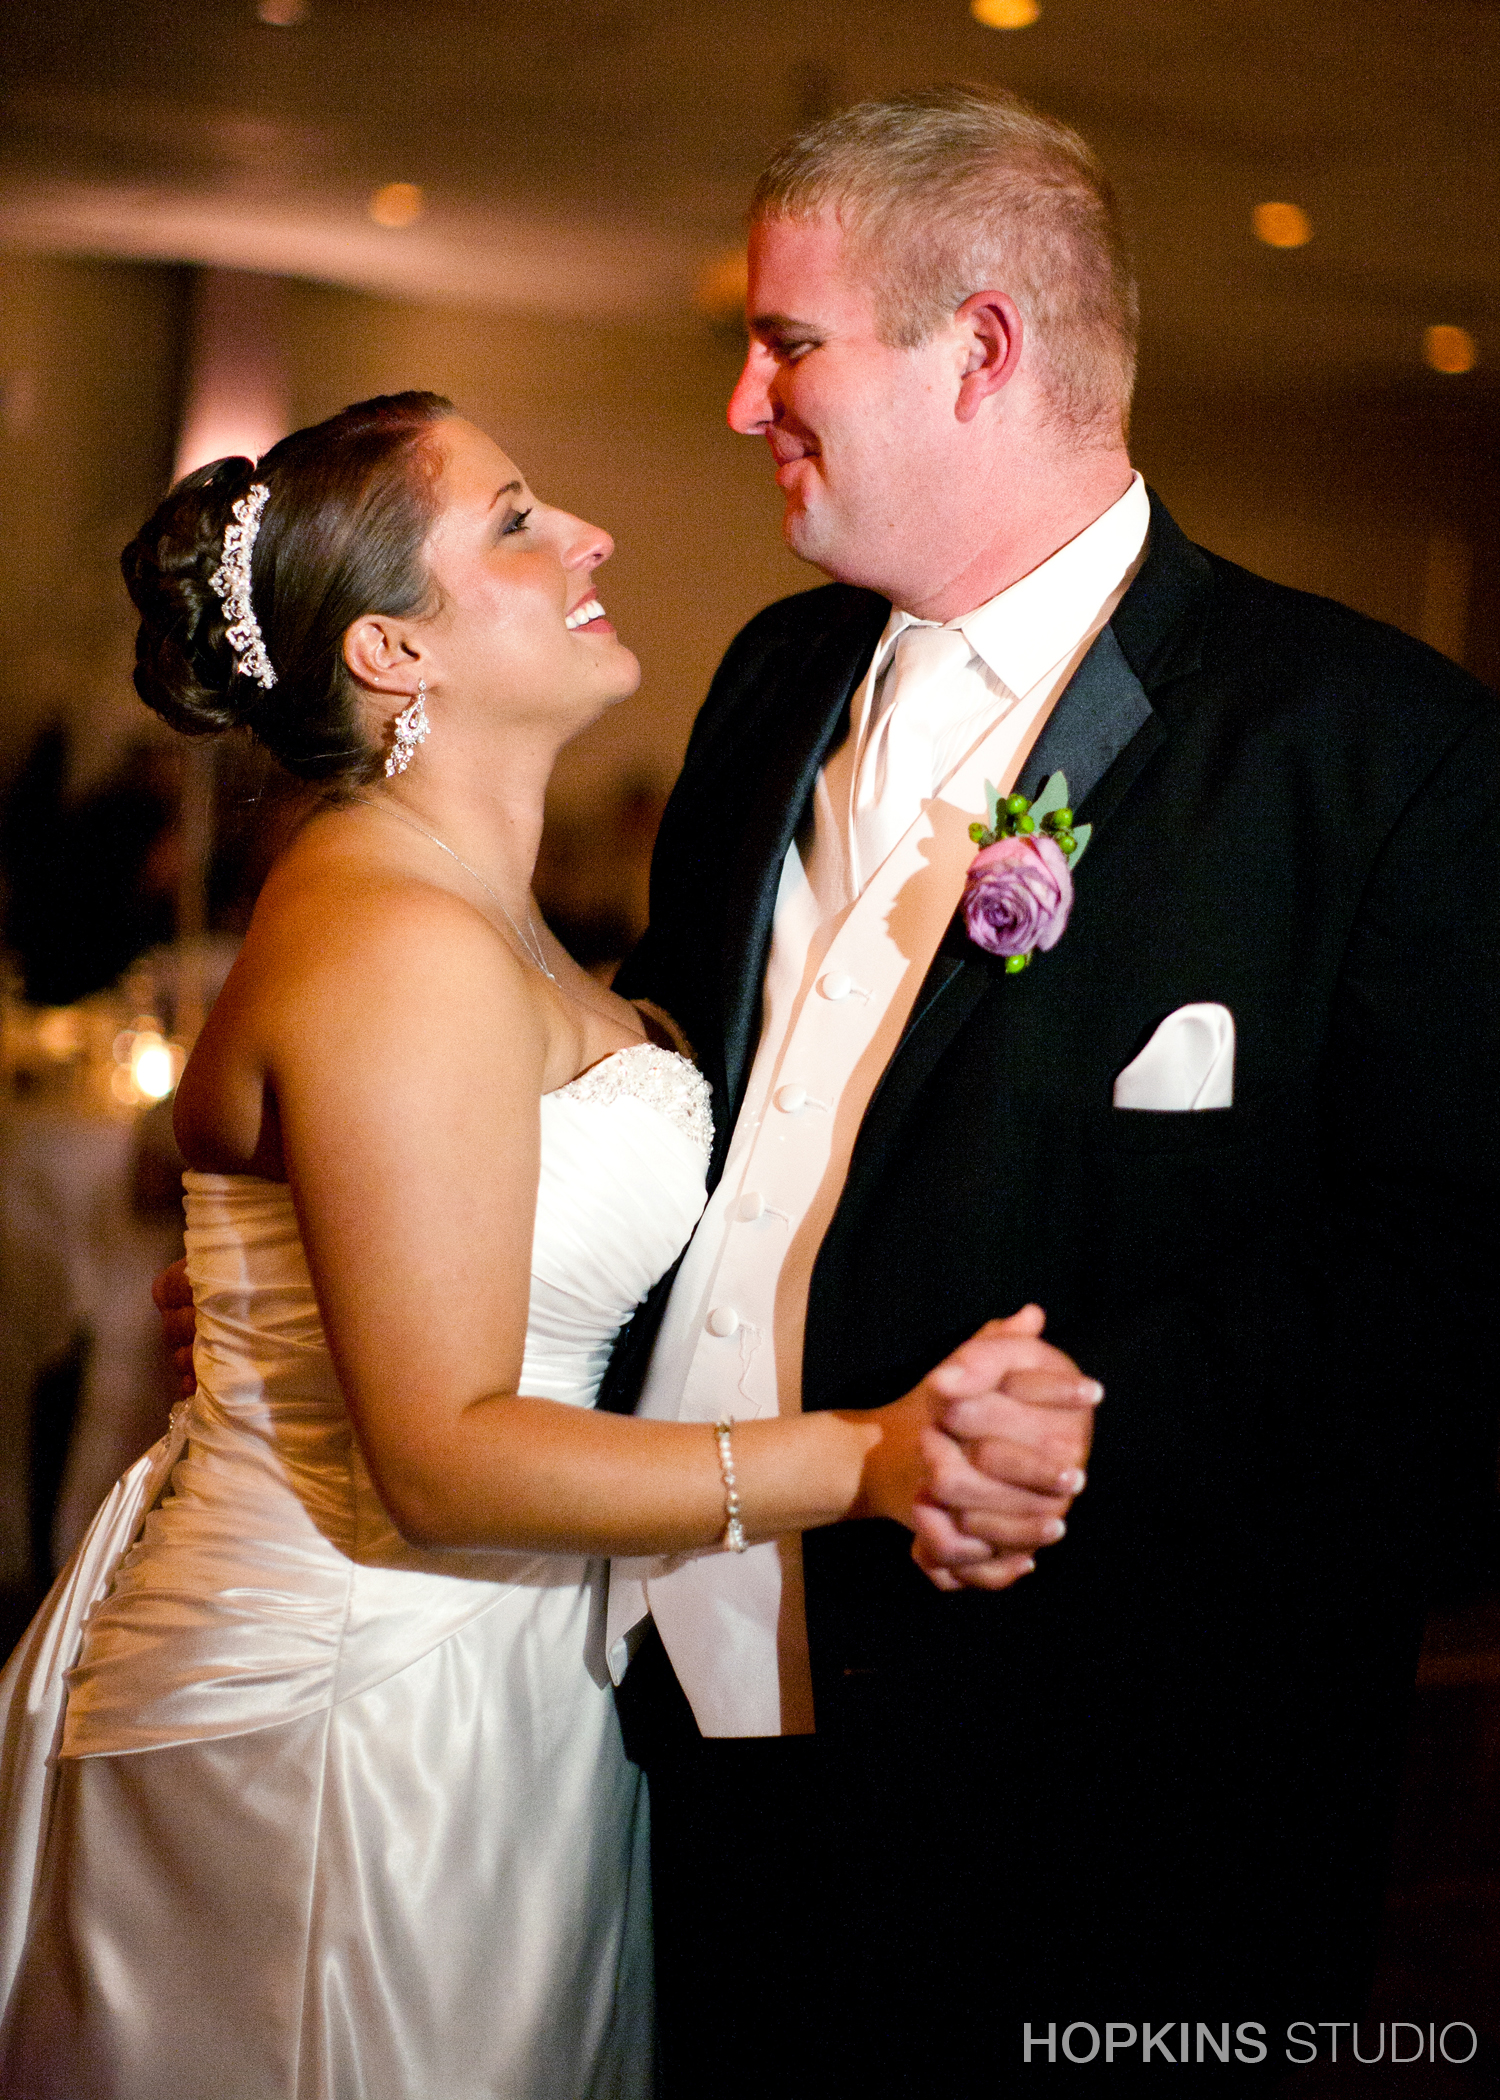 Wedding-Photography-Vineland-Center-Southwest-Michigan_26.jpg